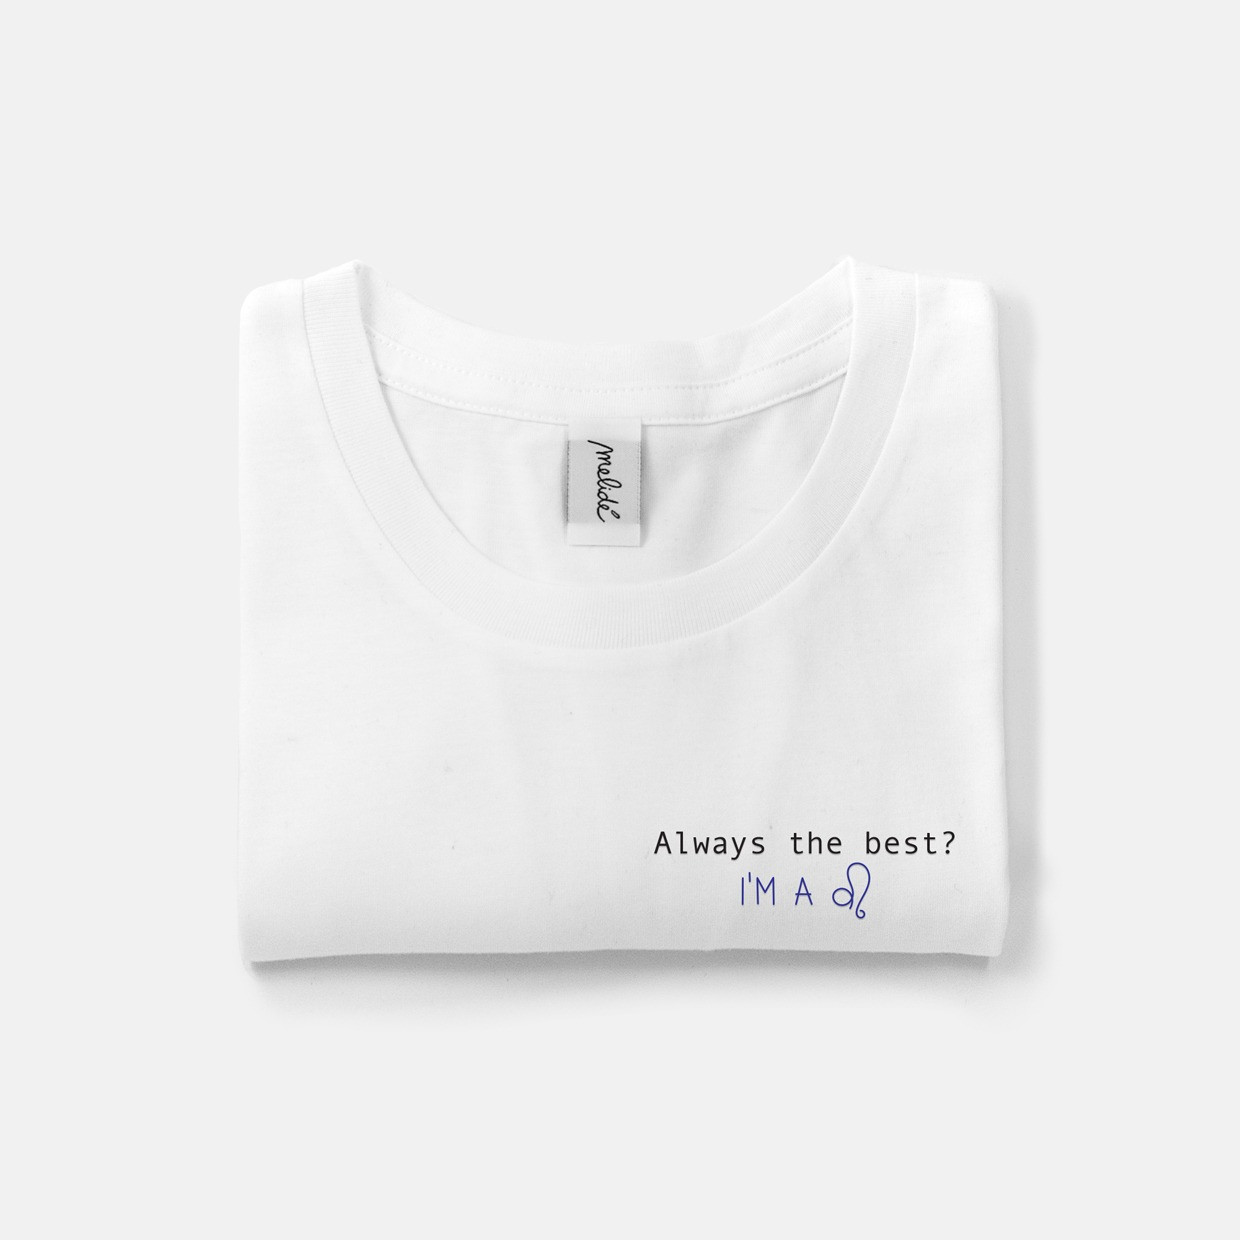 The ALWAYS THE BEST? LEO ultimate tee